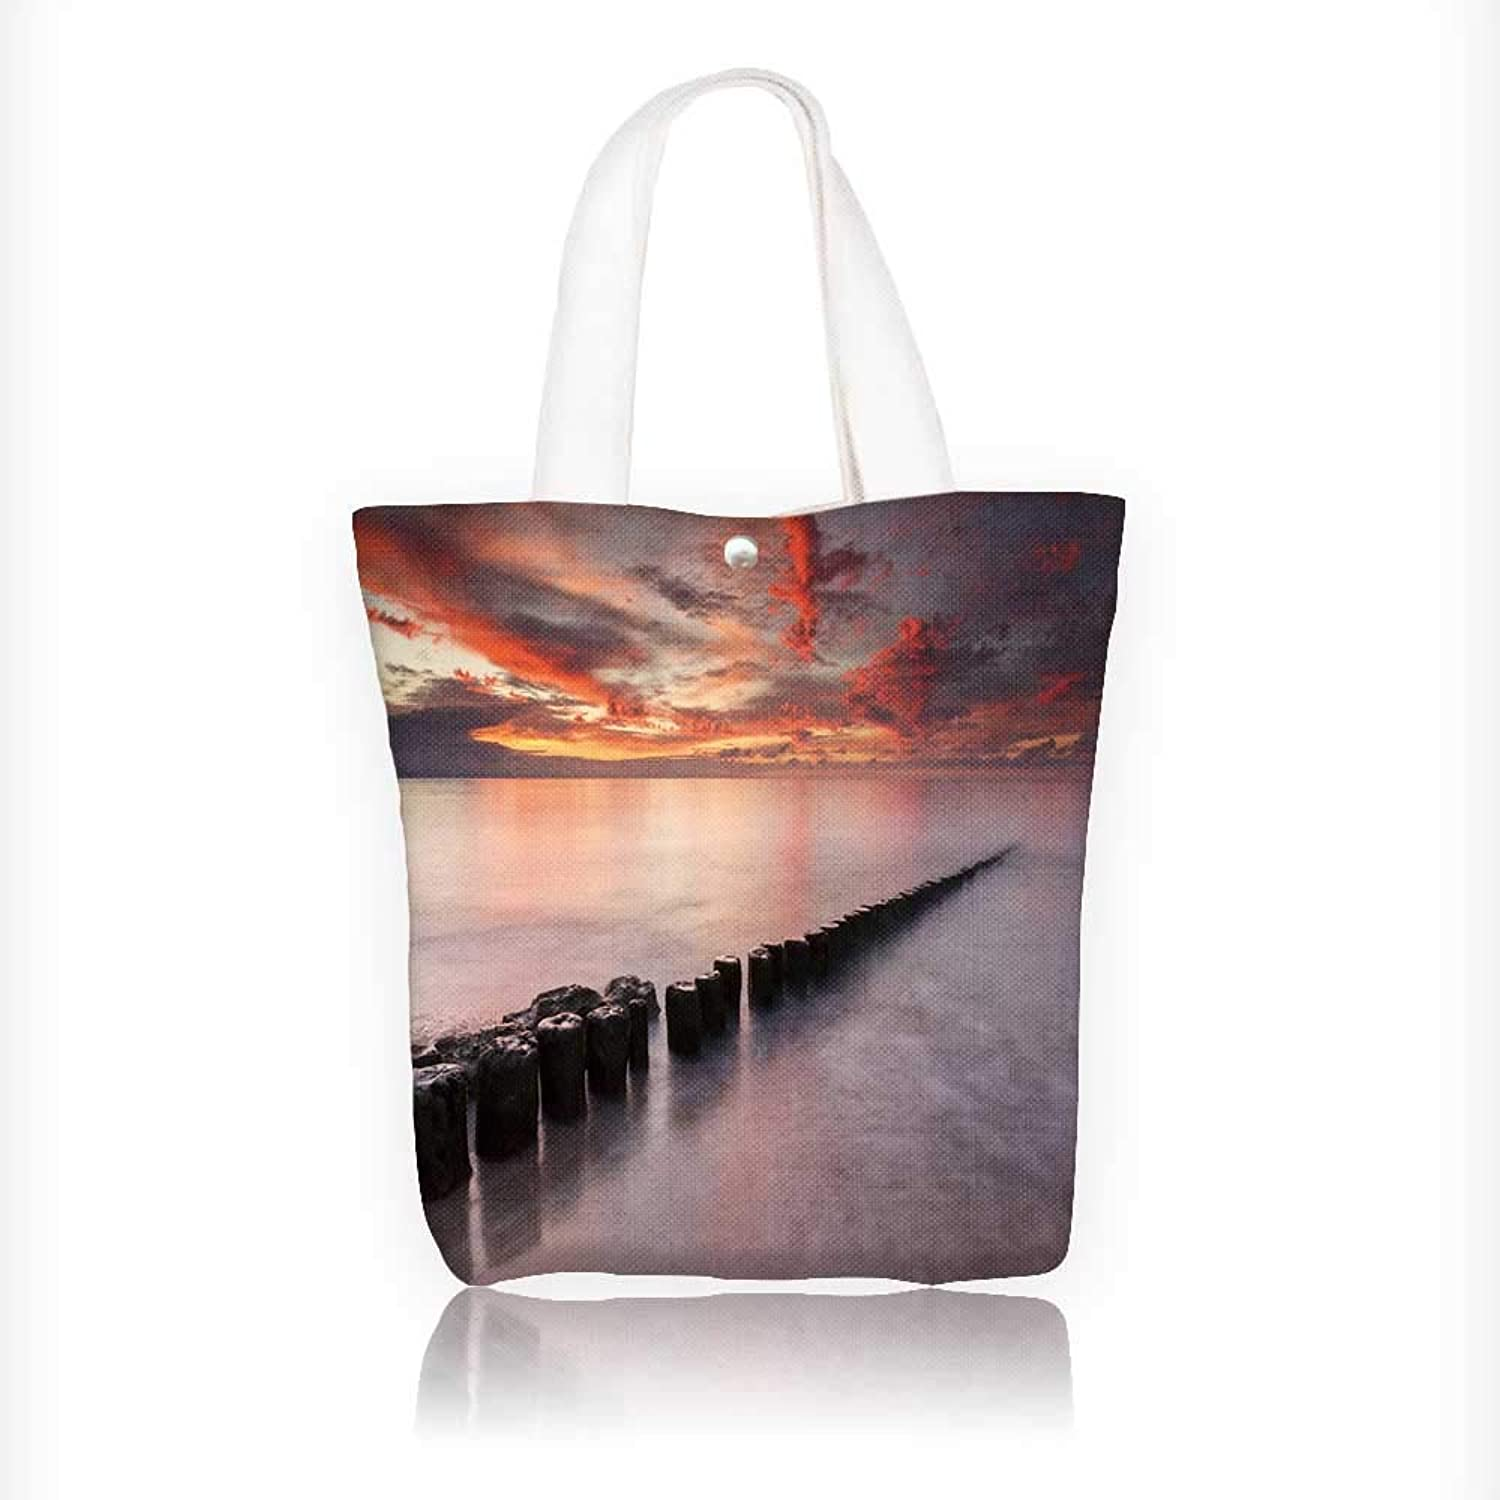 Canvas Shoulder Hand Bag Sunset on Baltic sea in North Poland Sunset sea Tote Bag for Women Large Work Tote Bag Shoulder Travel Totes Beach Bag W11xH11xD3 INCH